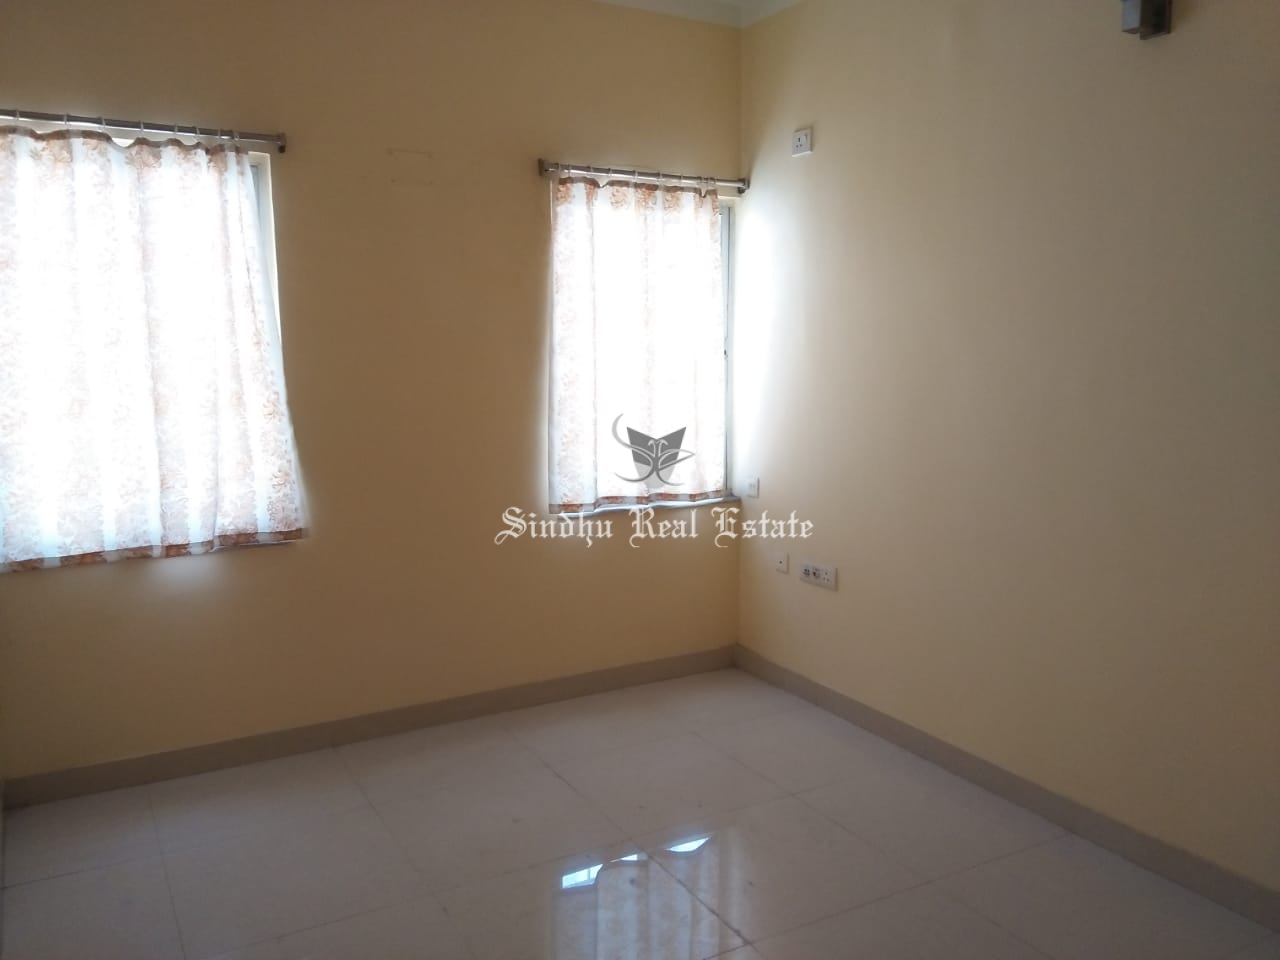 2 BHK residential property for rent in Salt-lake